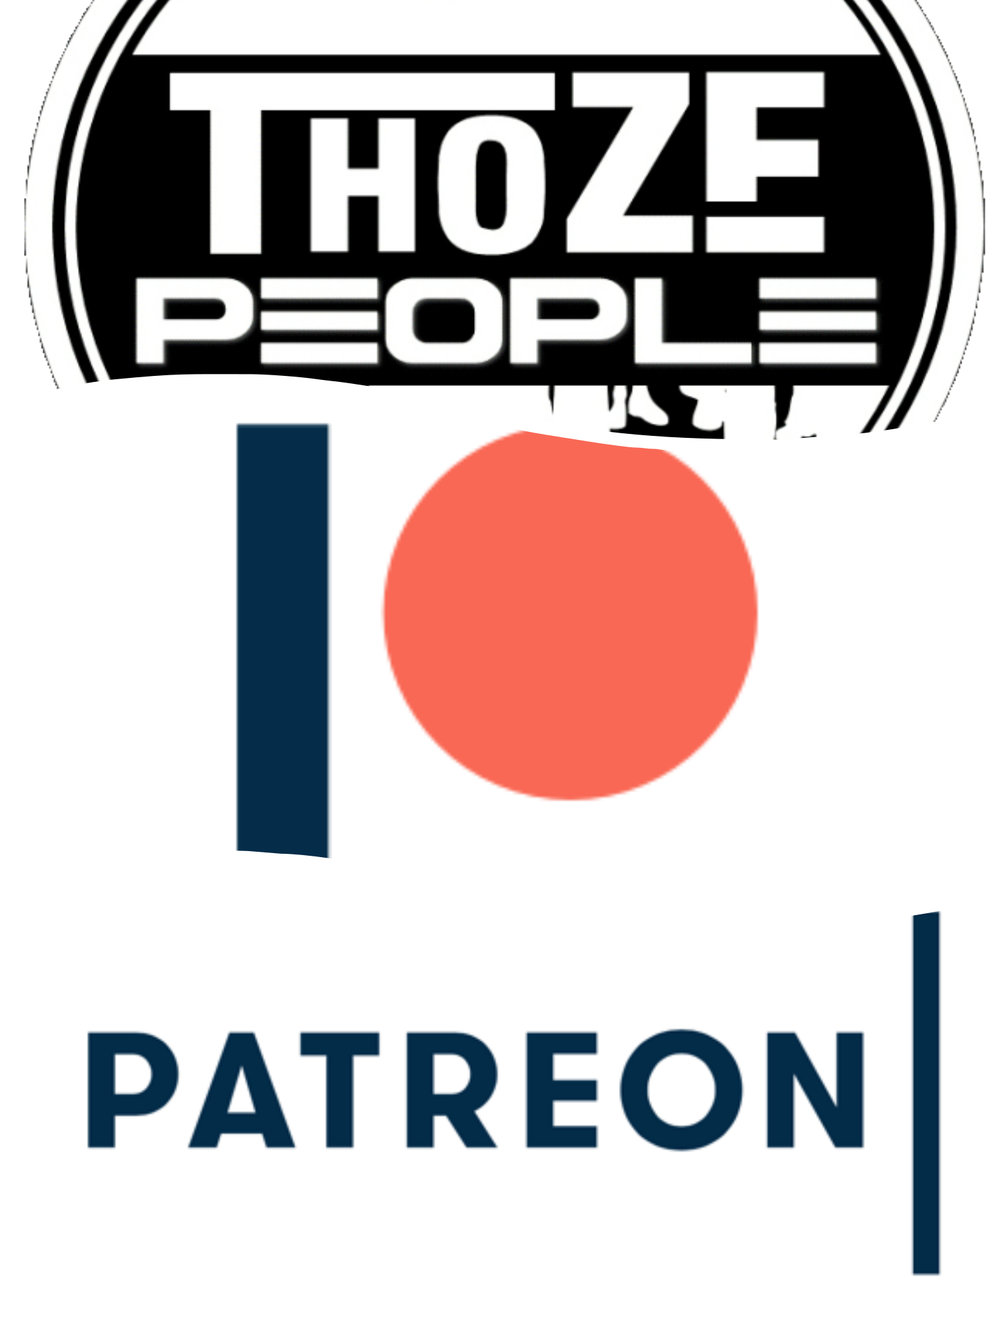 Patreon Thoze People.jpg